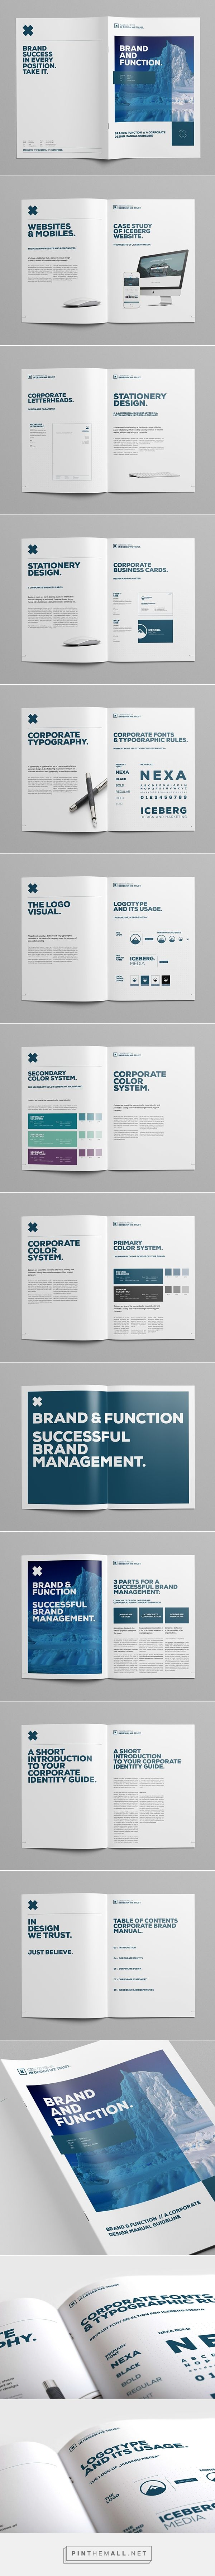 Elite Corporate Design Manual Guide on Behance - created via…